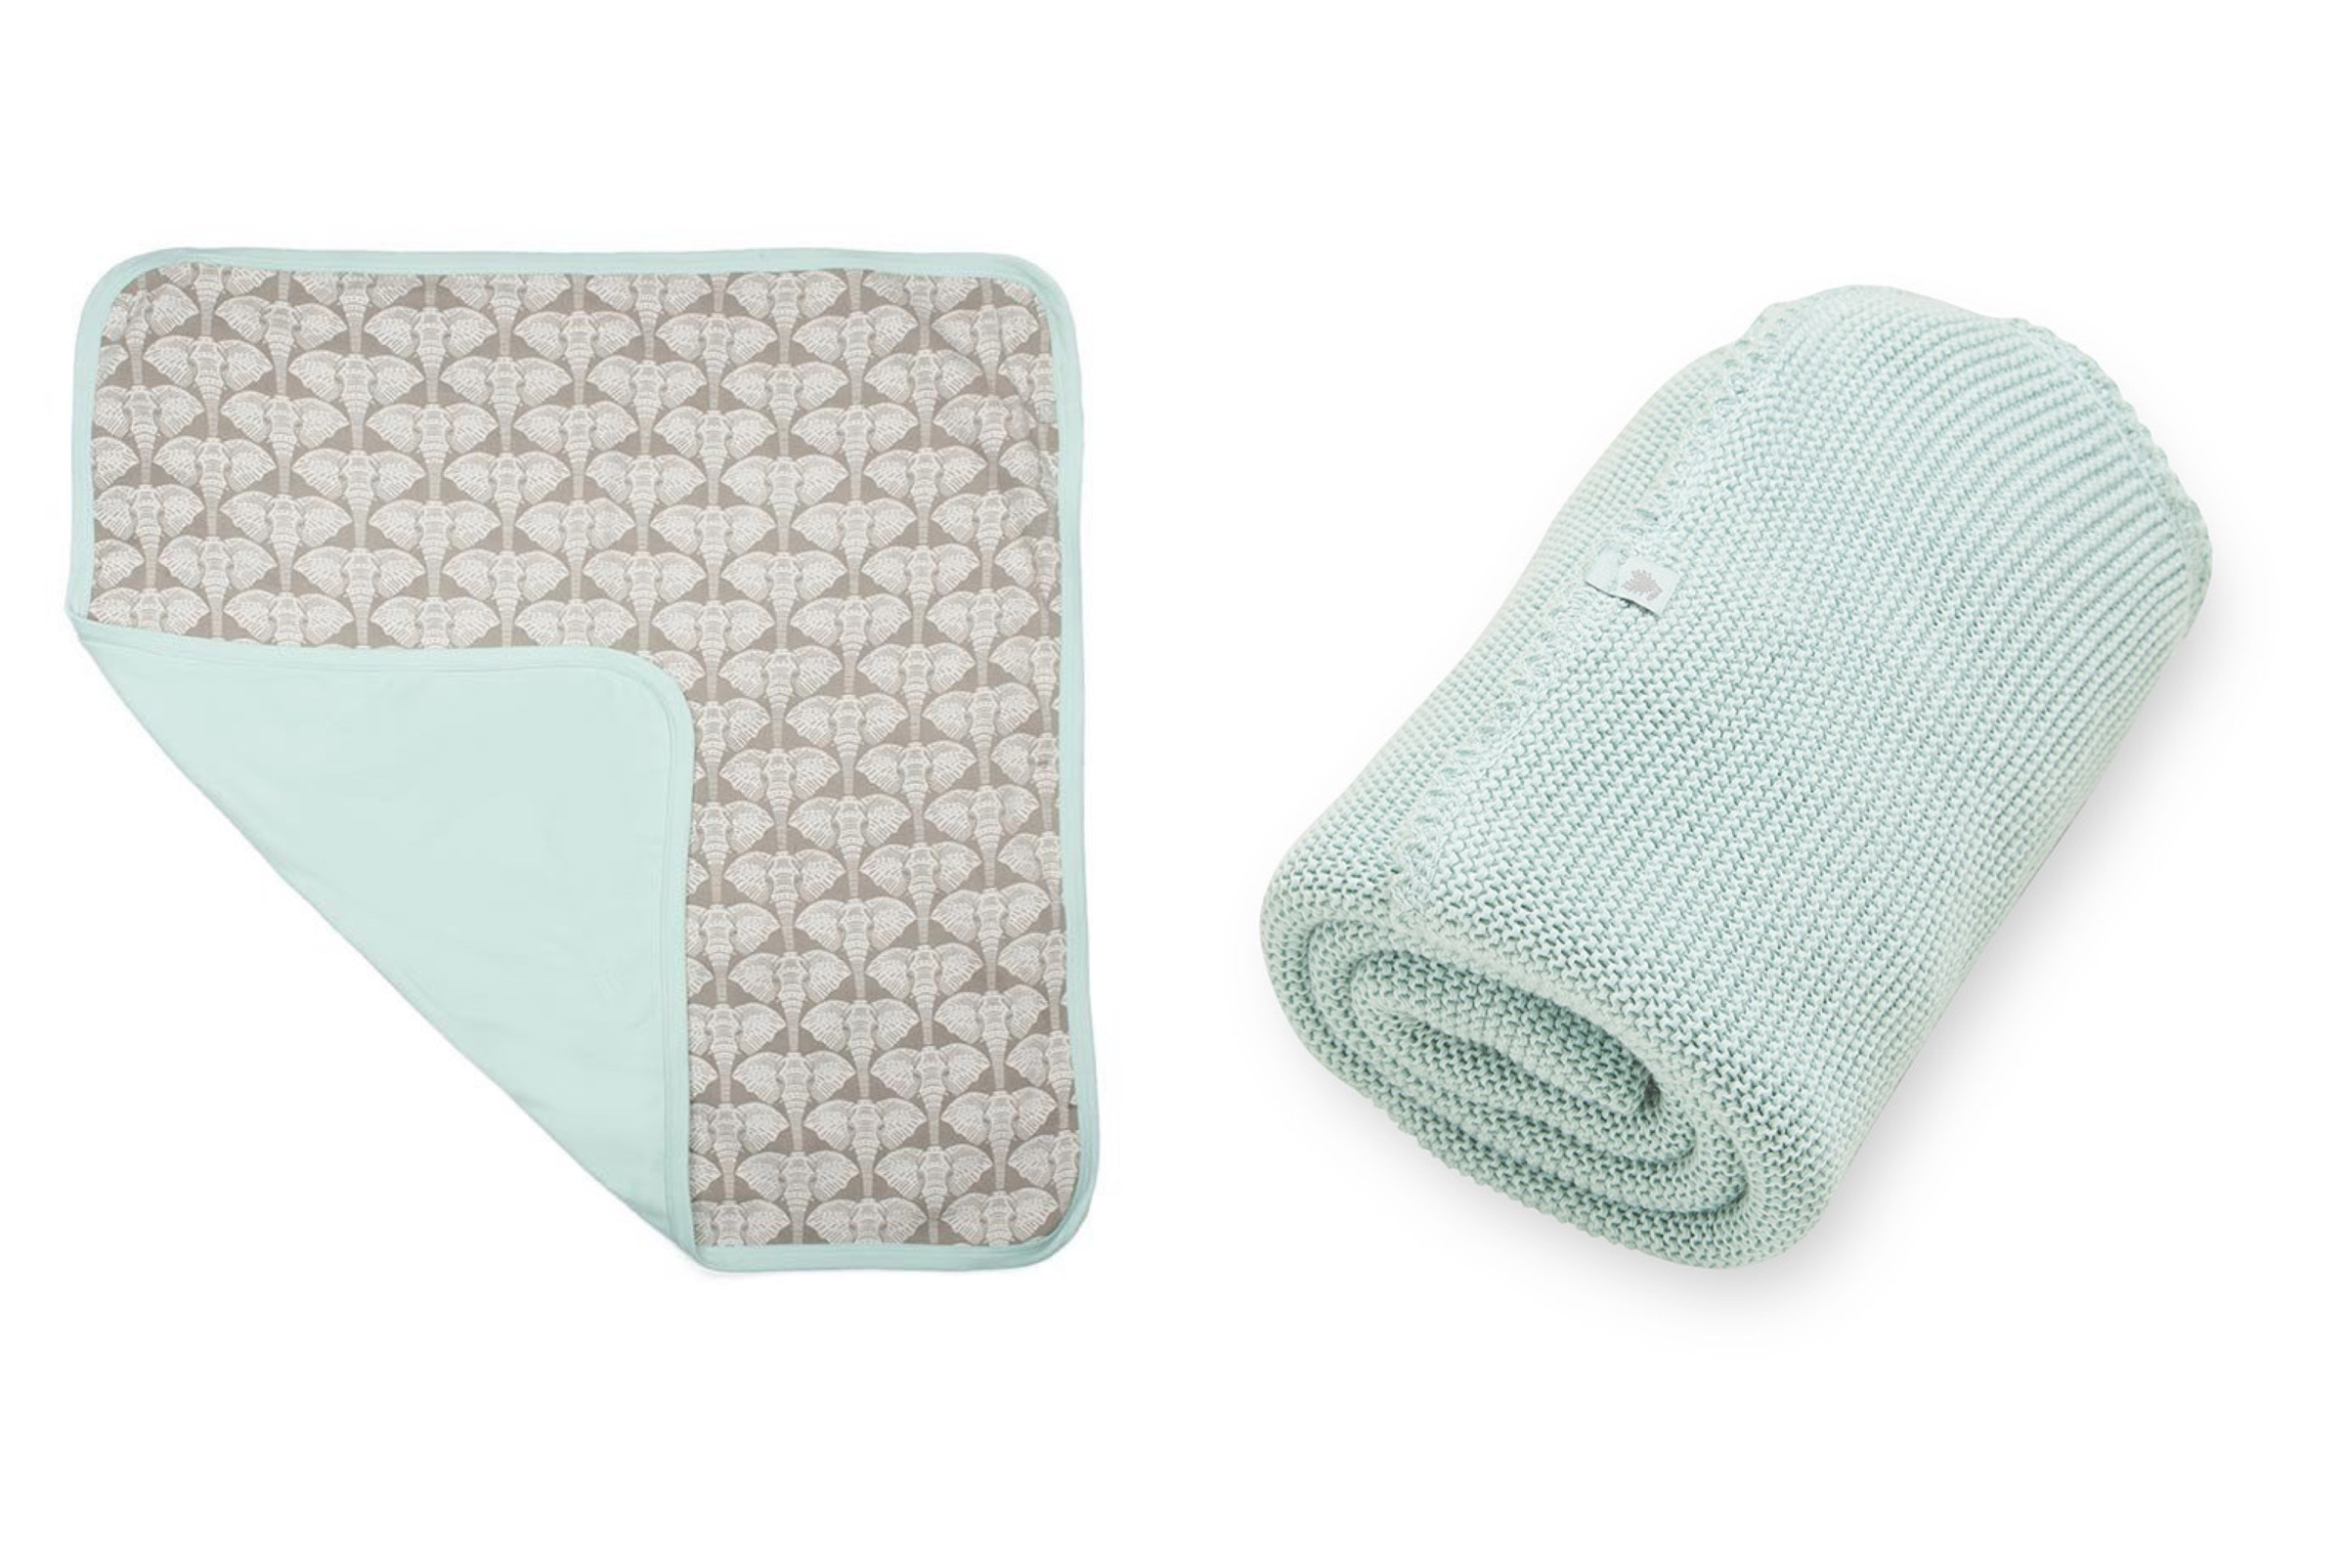 Stylish baby gifts - Natural Baby Shower - Blankets